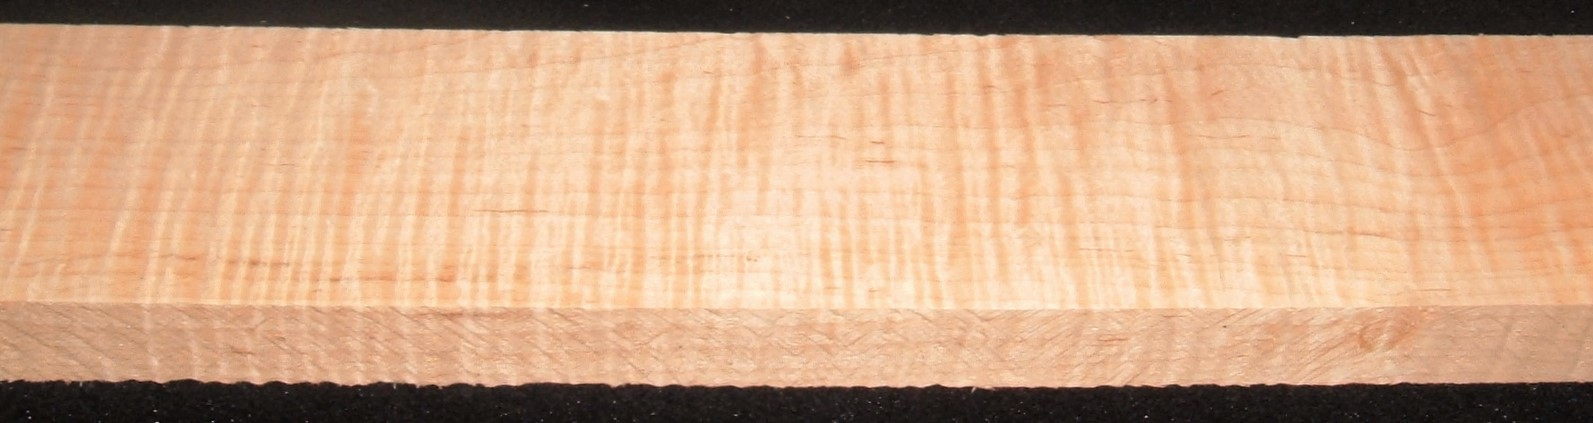 QS2104-39JK, 1-1/4x4-7/8x59, Quartersawn Curly Maple